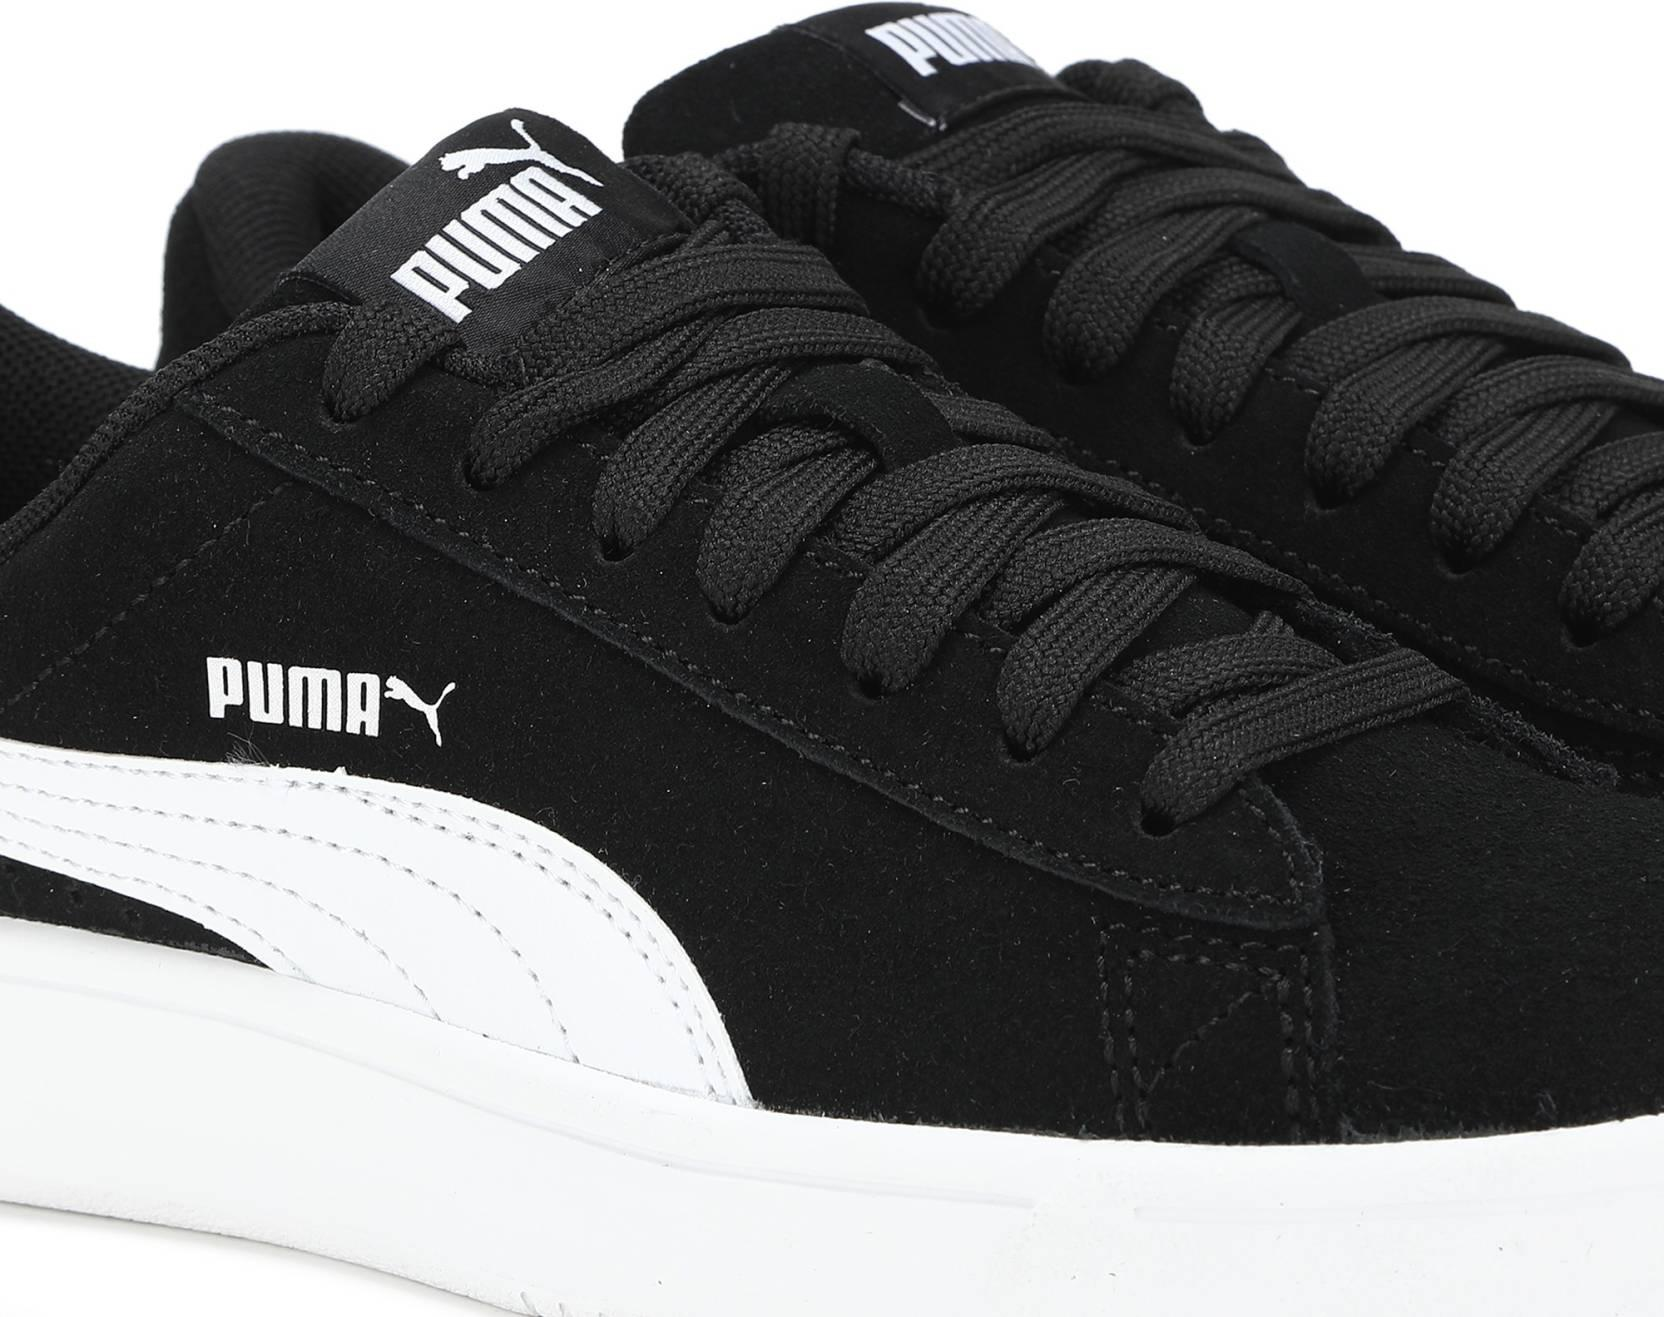 Puma Shoes Price List in India on 26